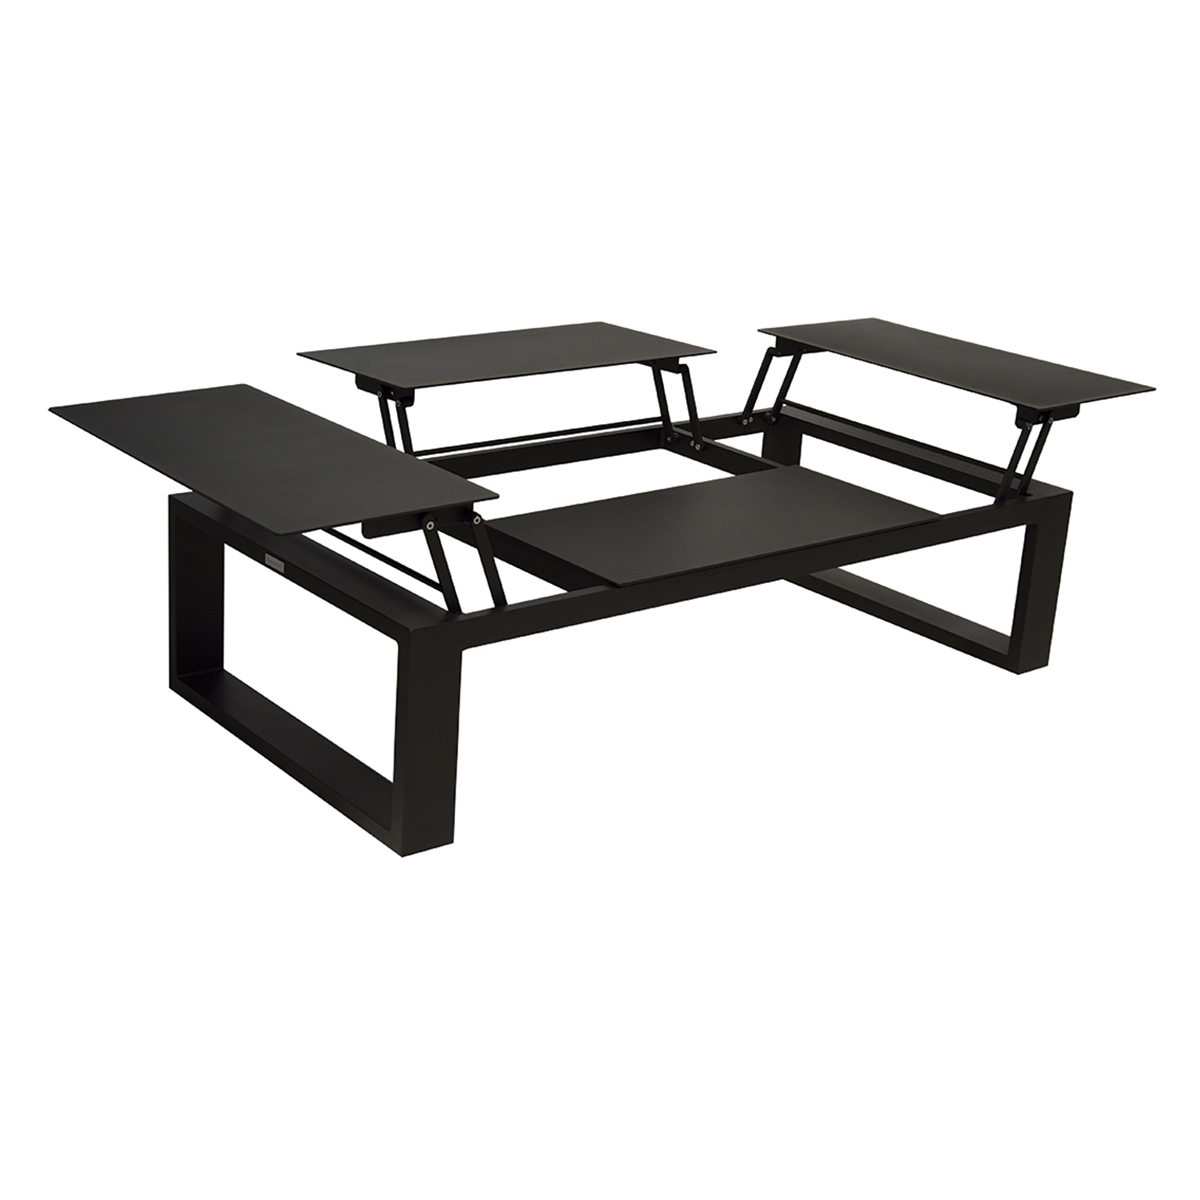 Table basse avec plateau relevable zendart outdoor for Plateau table exterieur